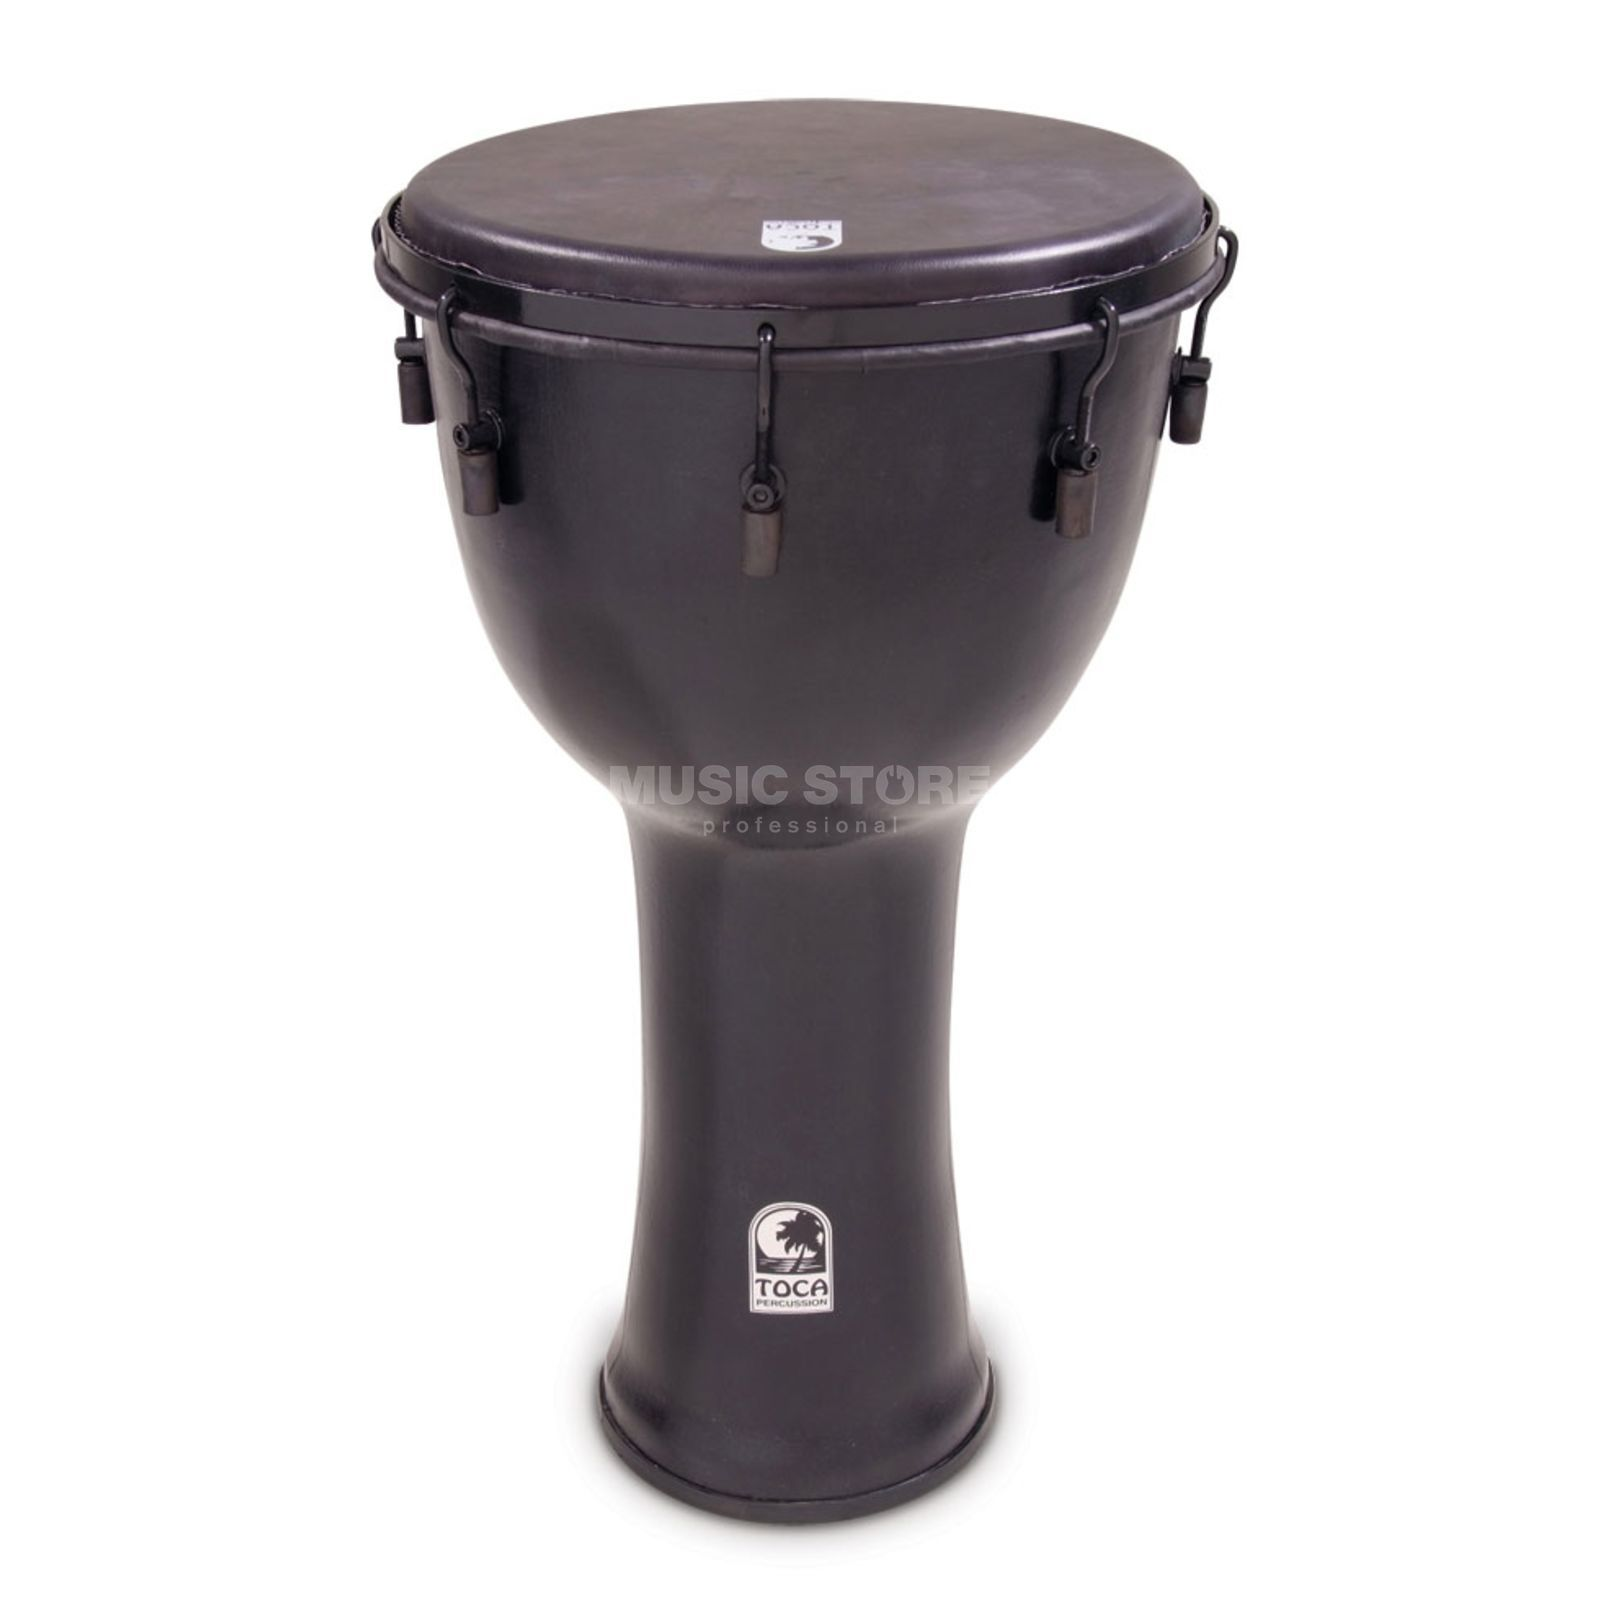 "Toca Percussion Freestyle Djembe SFDMX-14BMB, 14"", Black Mamba #BM, + Bag Produktbillede"